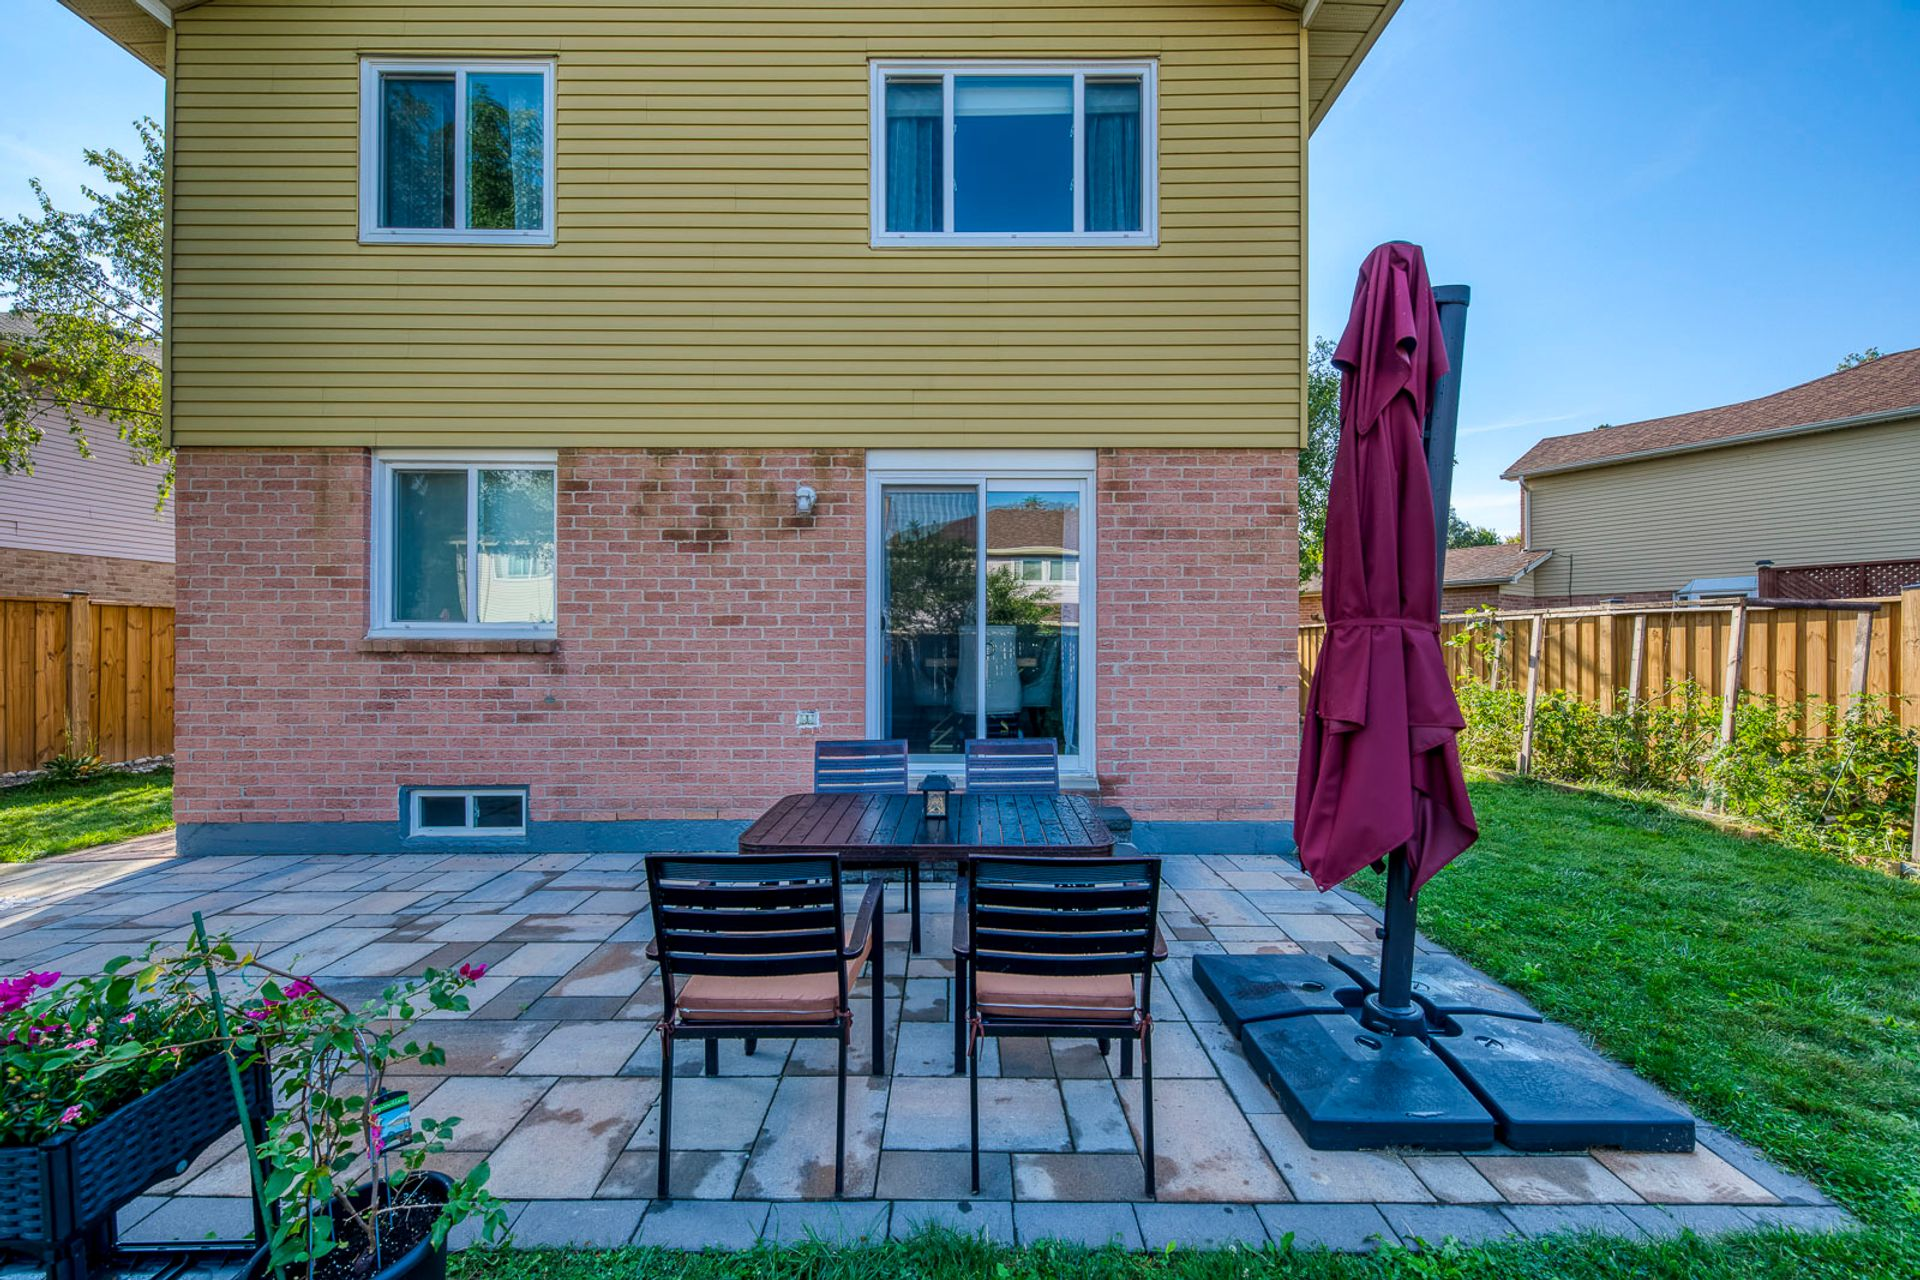 Backyard - 6278 Lavery Crt, Mississauga - Elite3 & Team at 6278 Lavery Court, Meadowvale, Mississauga